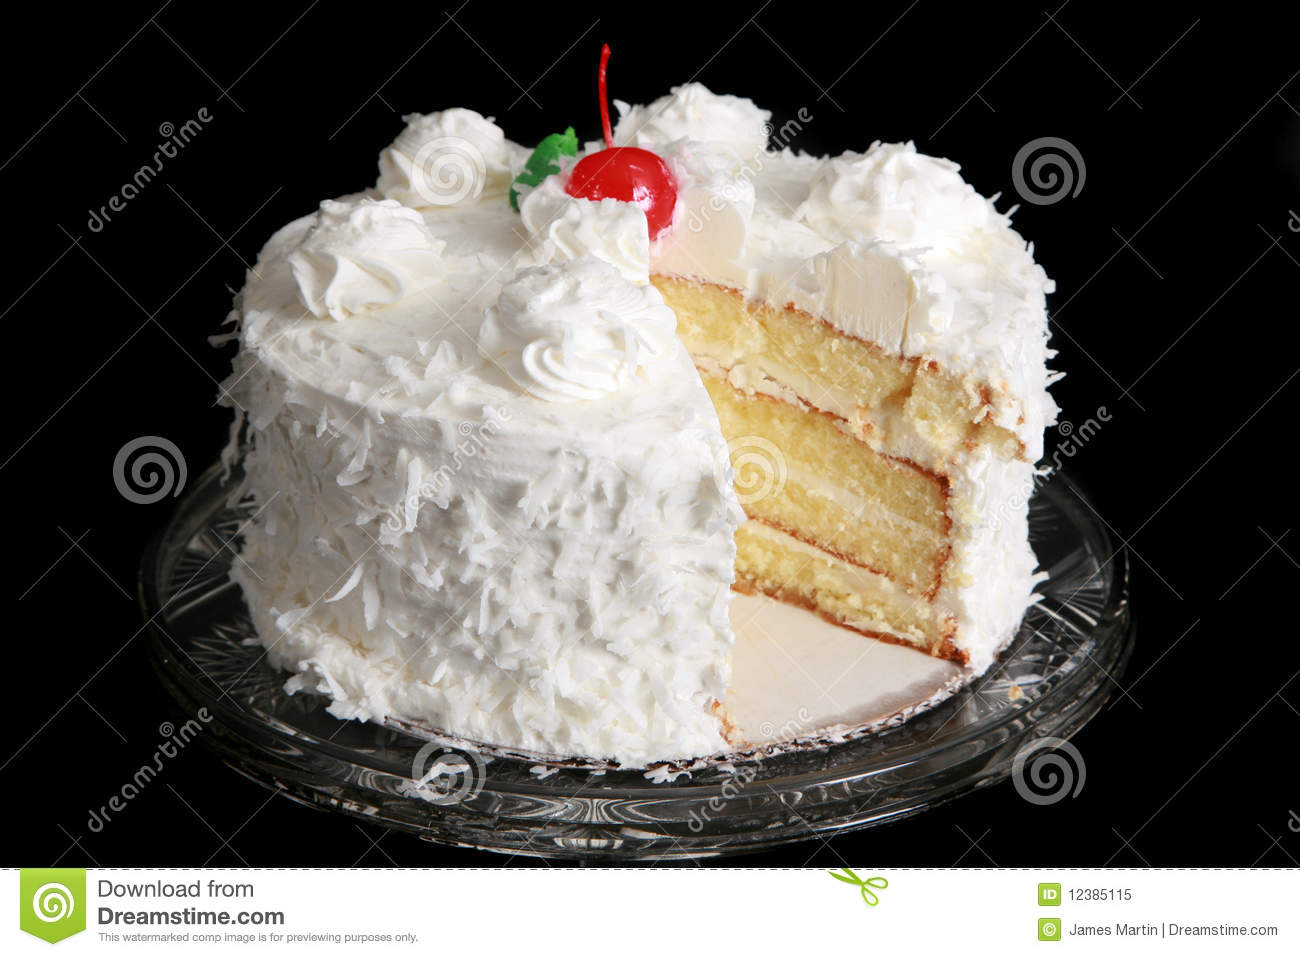 Eat A Piece Of Cake